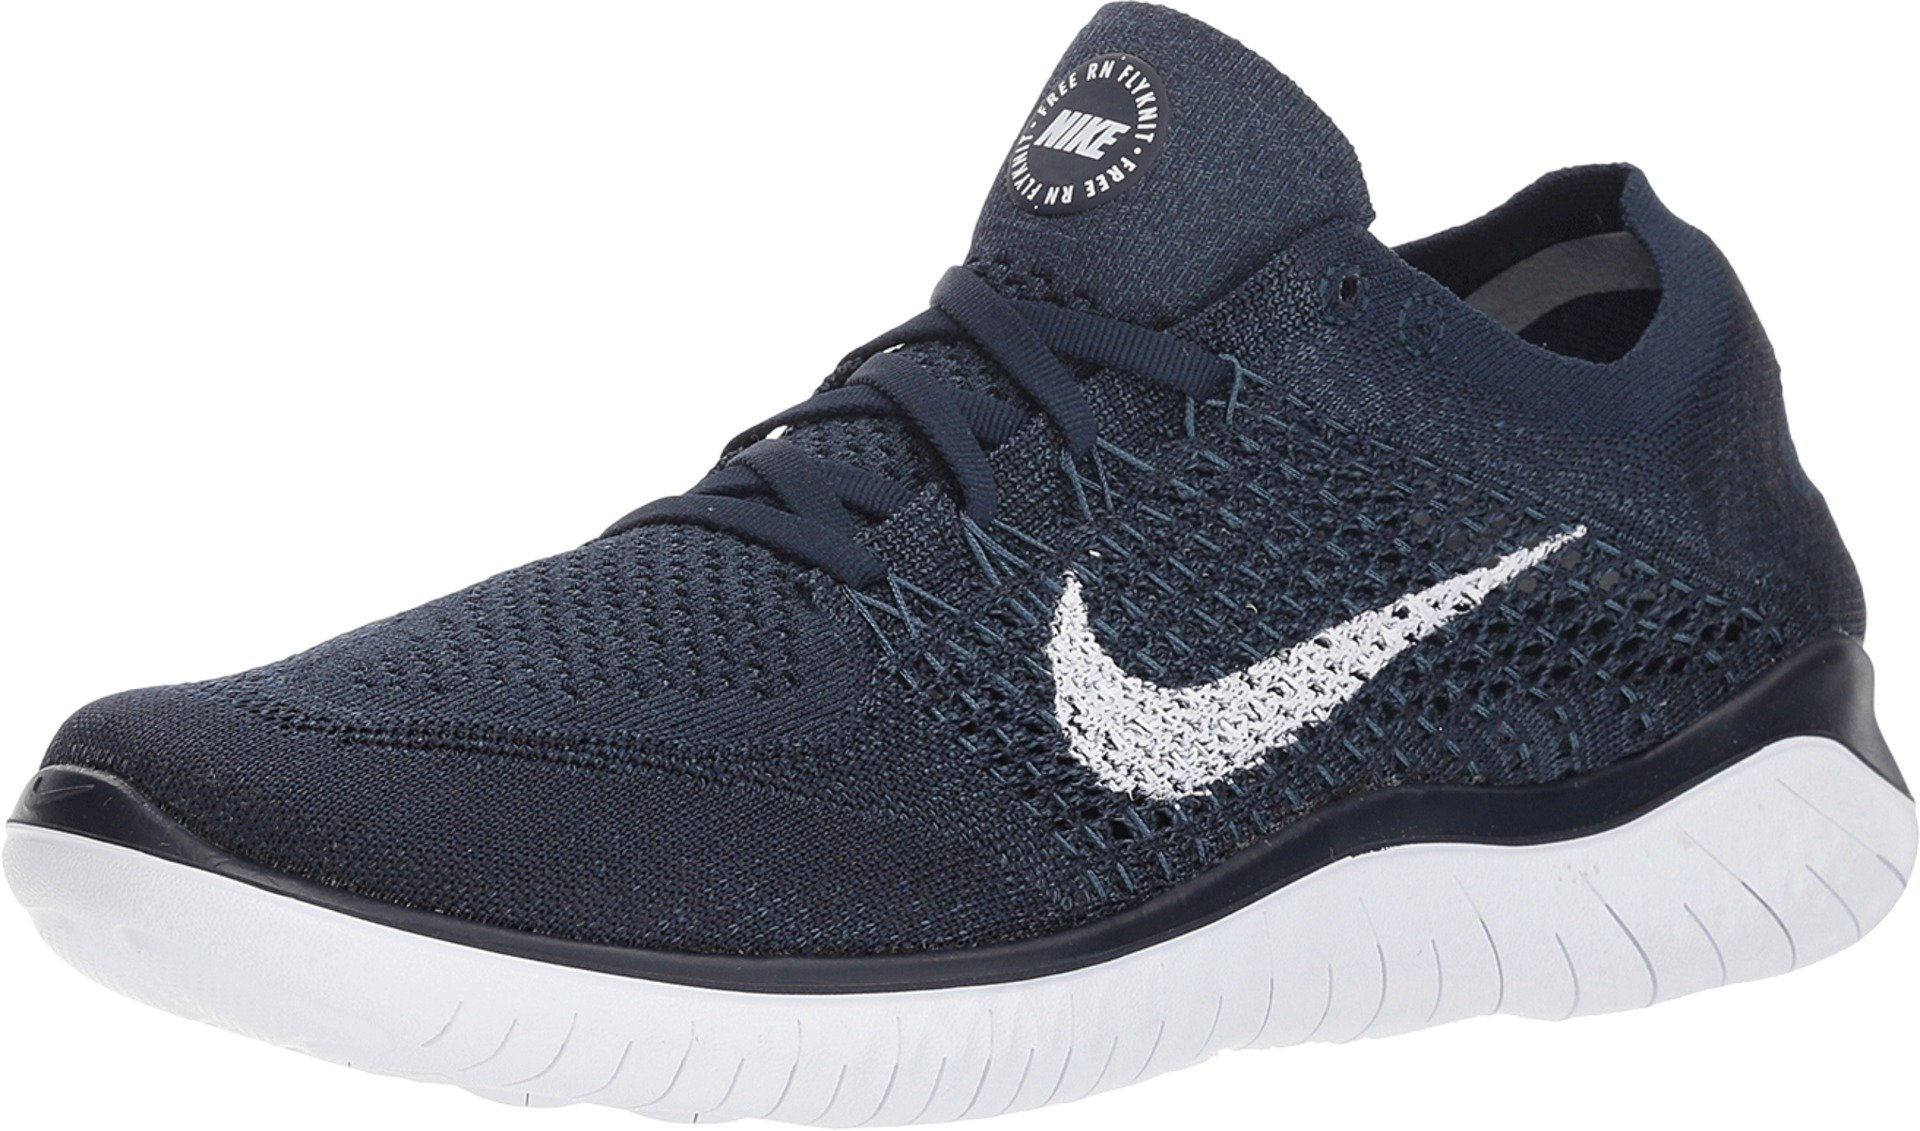 Nike Men's Free RN Flyknit 2018 Running Shoes (15, Navy/White)